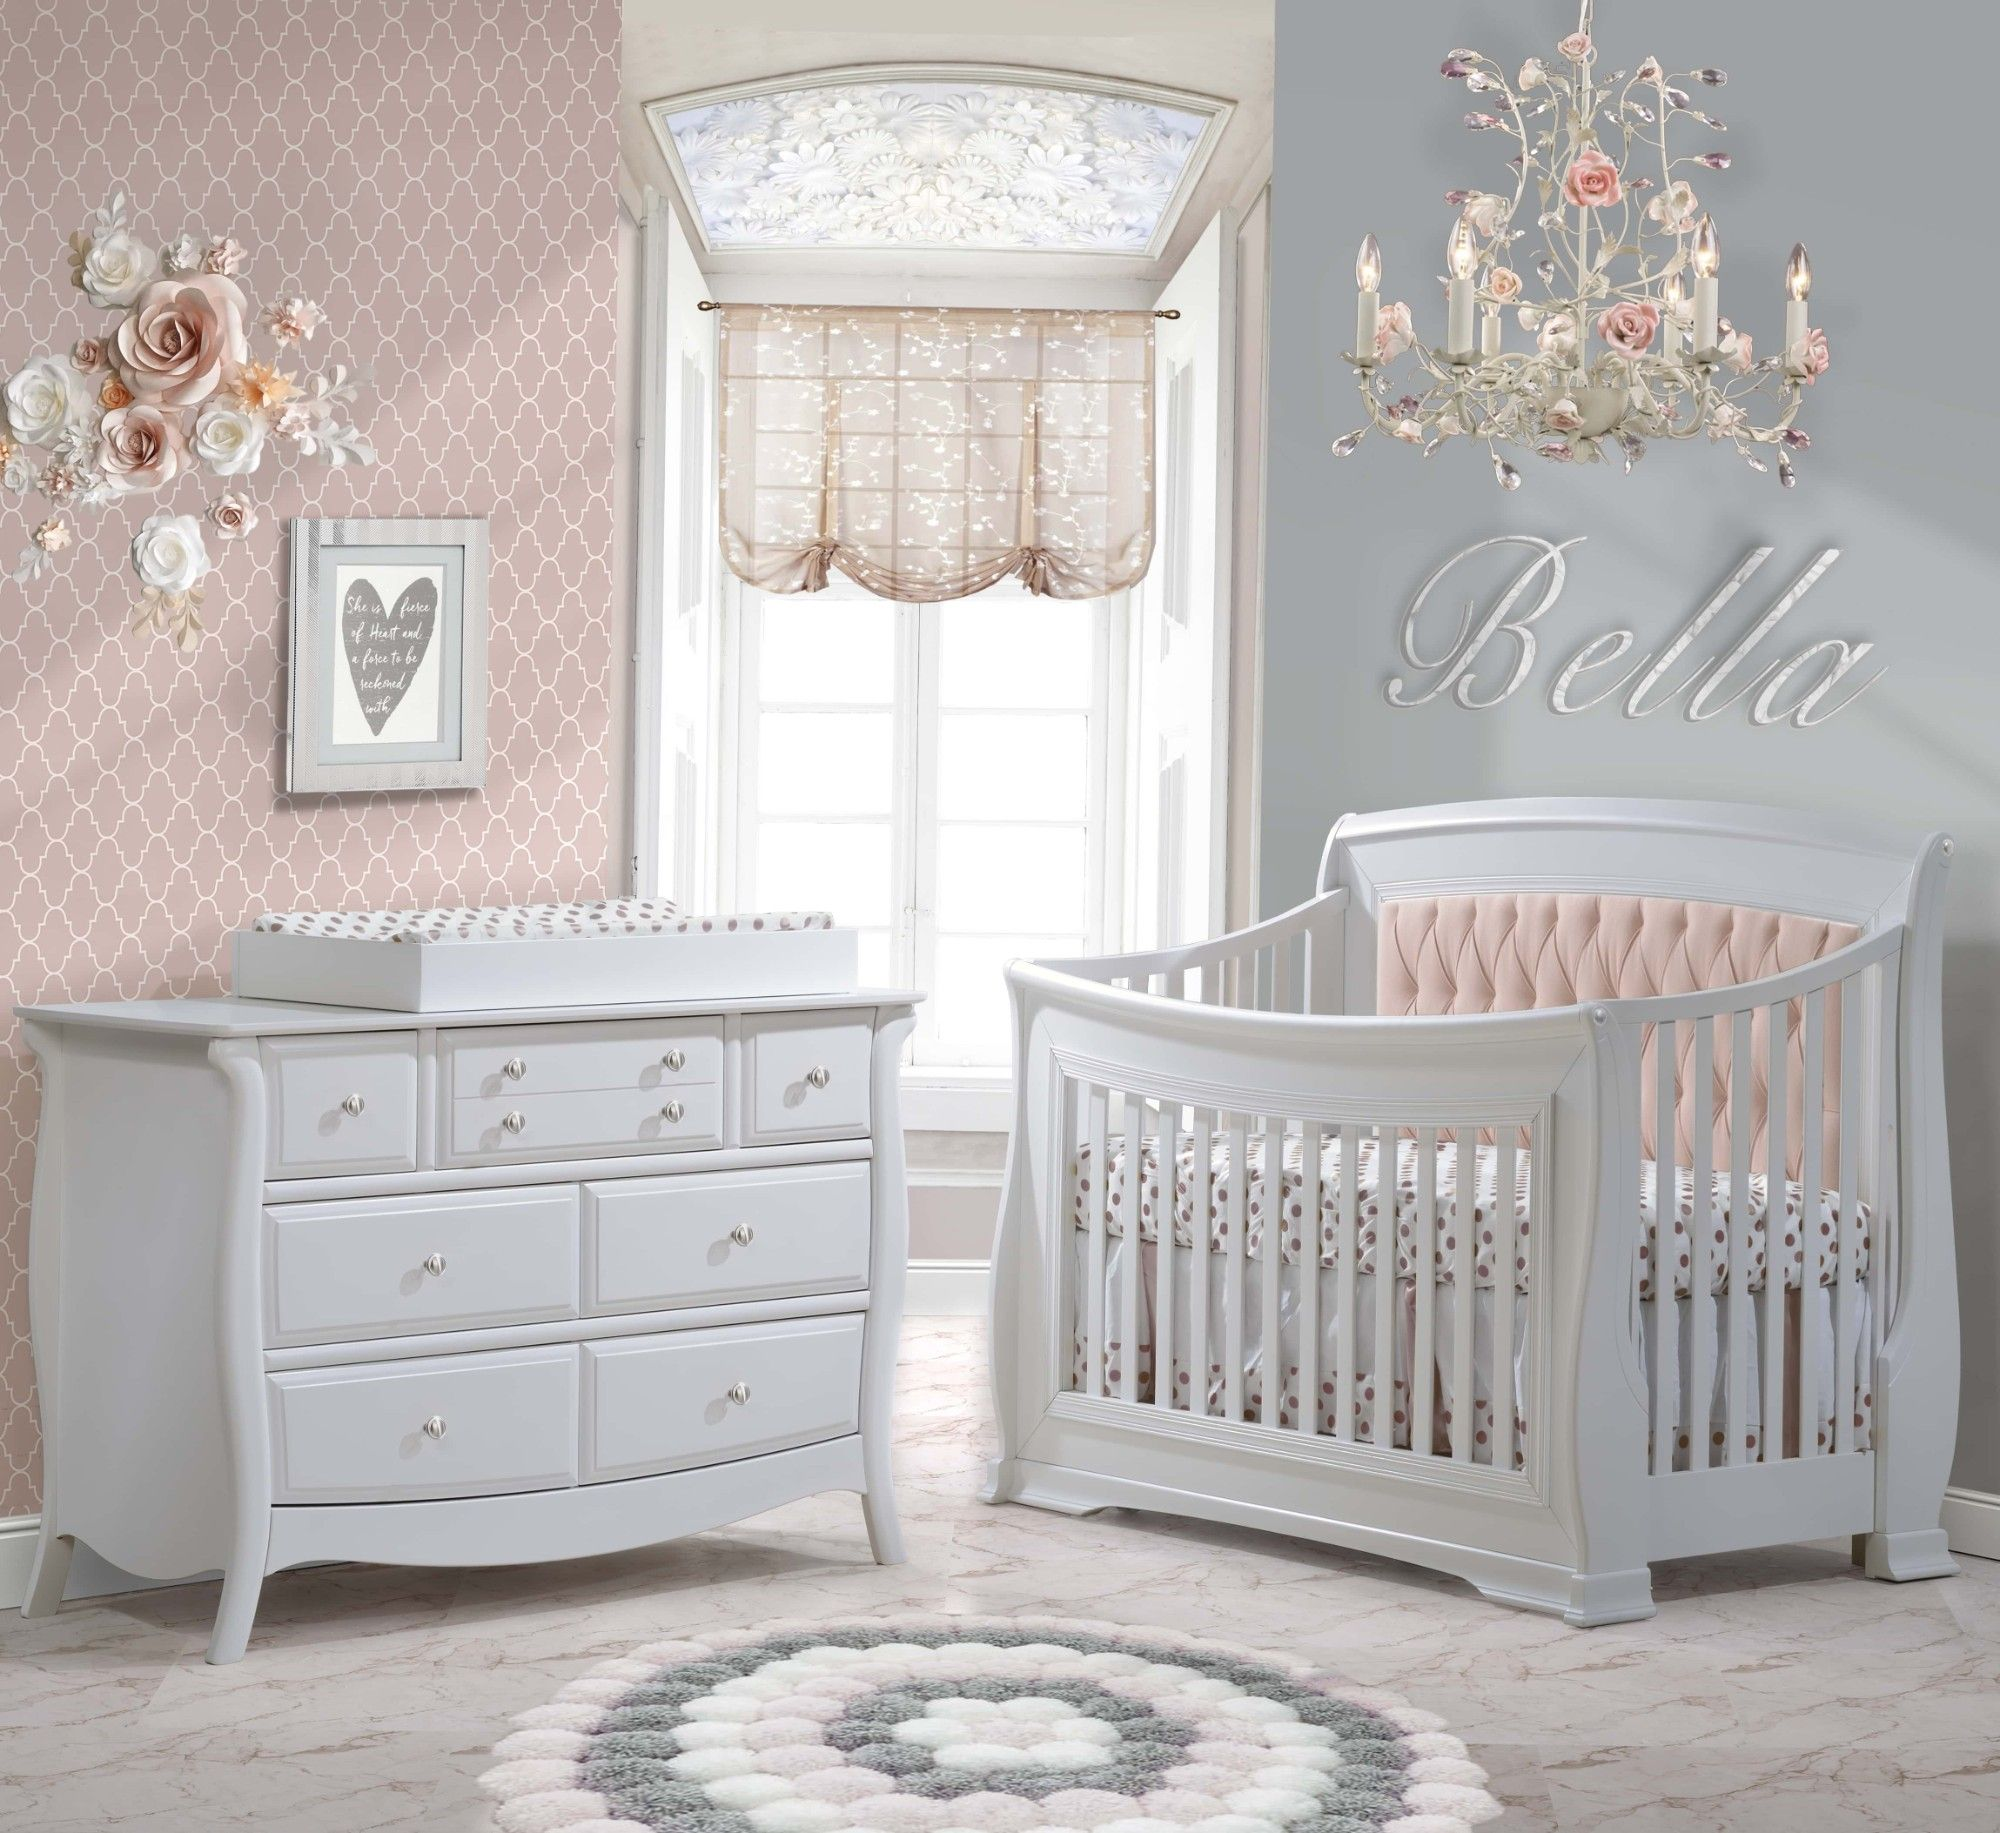 Natart And Nest Are High Quality Greenguard Furniture Including Baby Cribs Dressers Convertible Cribs Home Decor Kids Interior Design Baby Bedroom Furniture